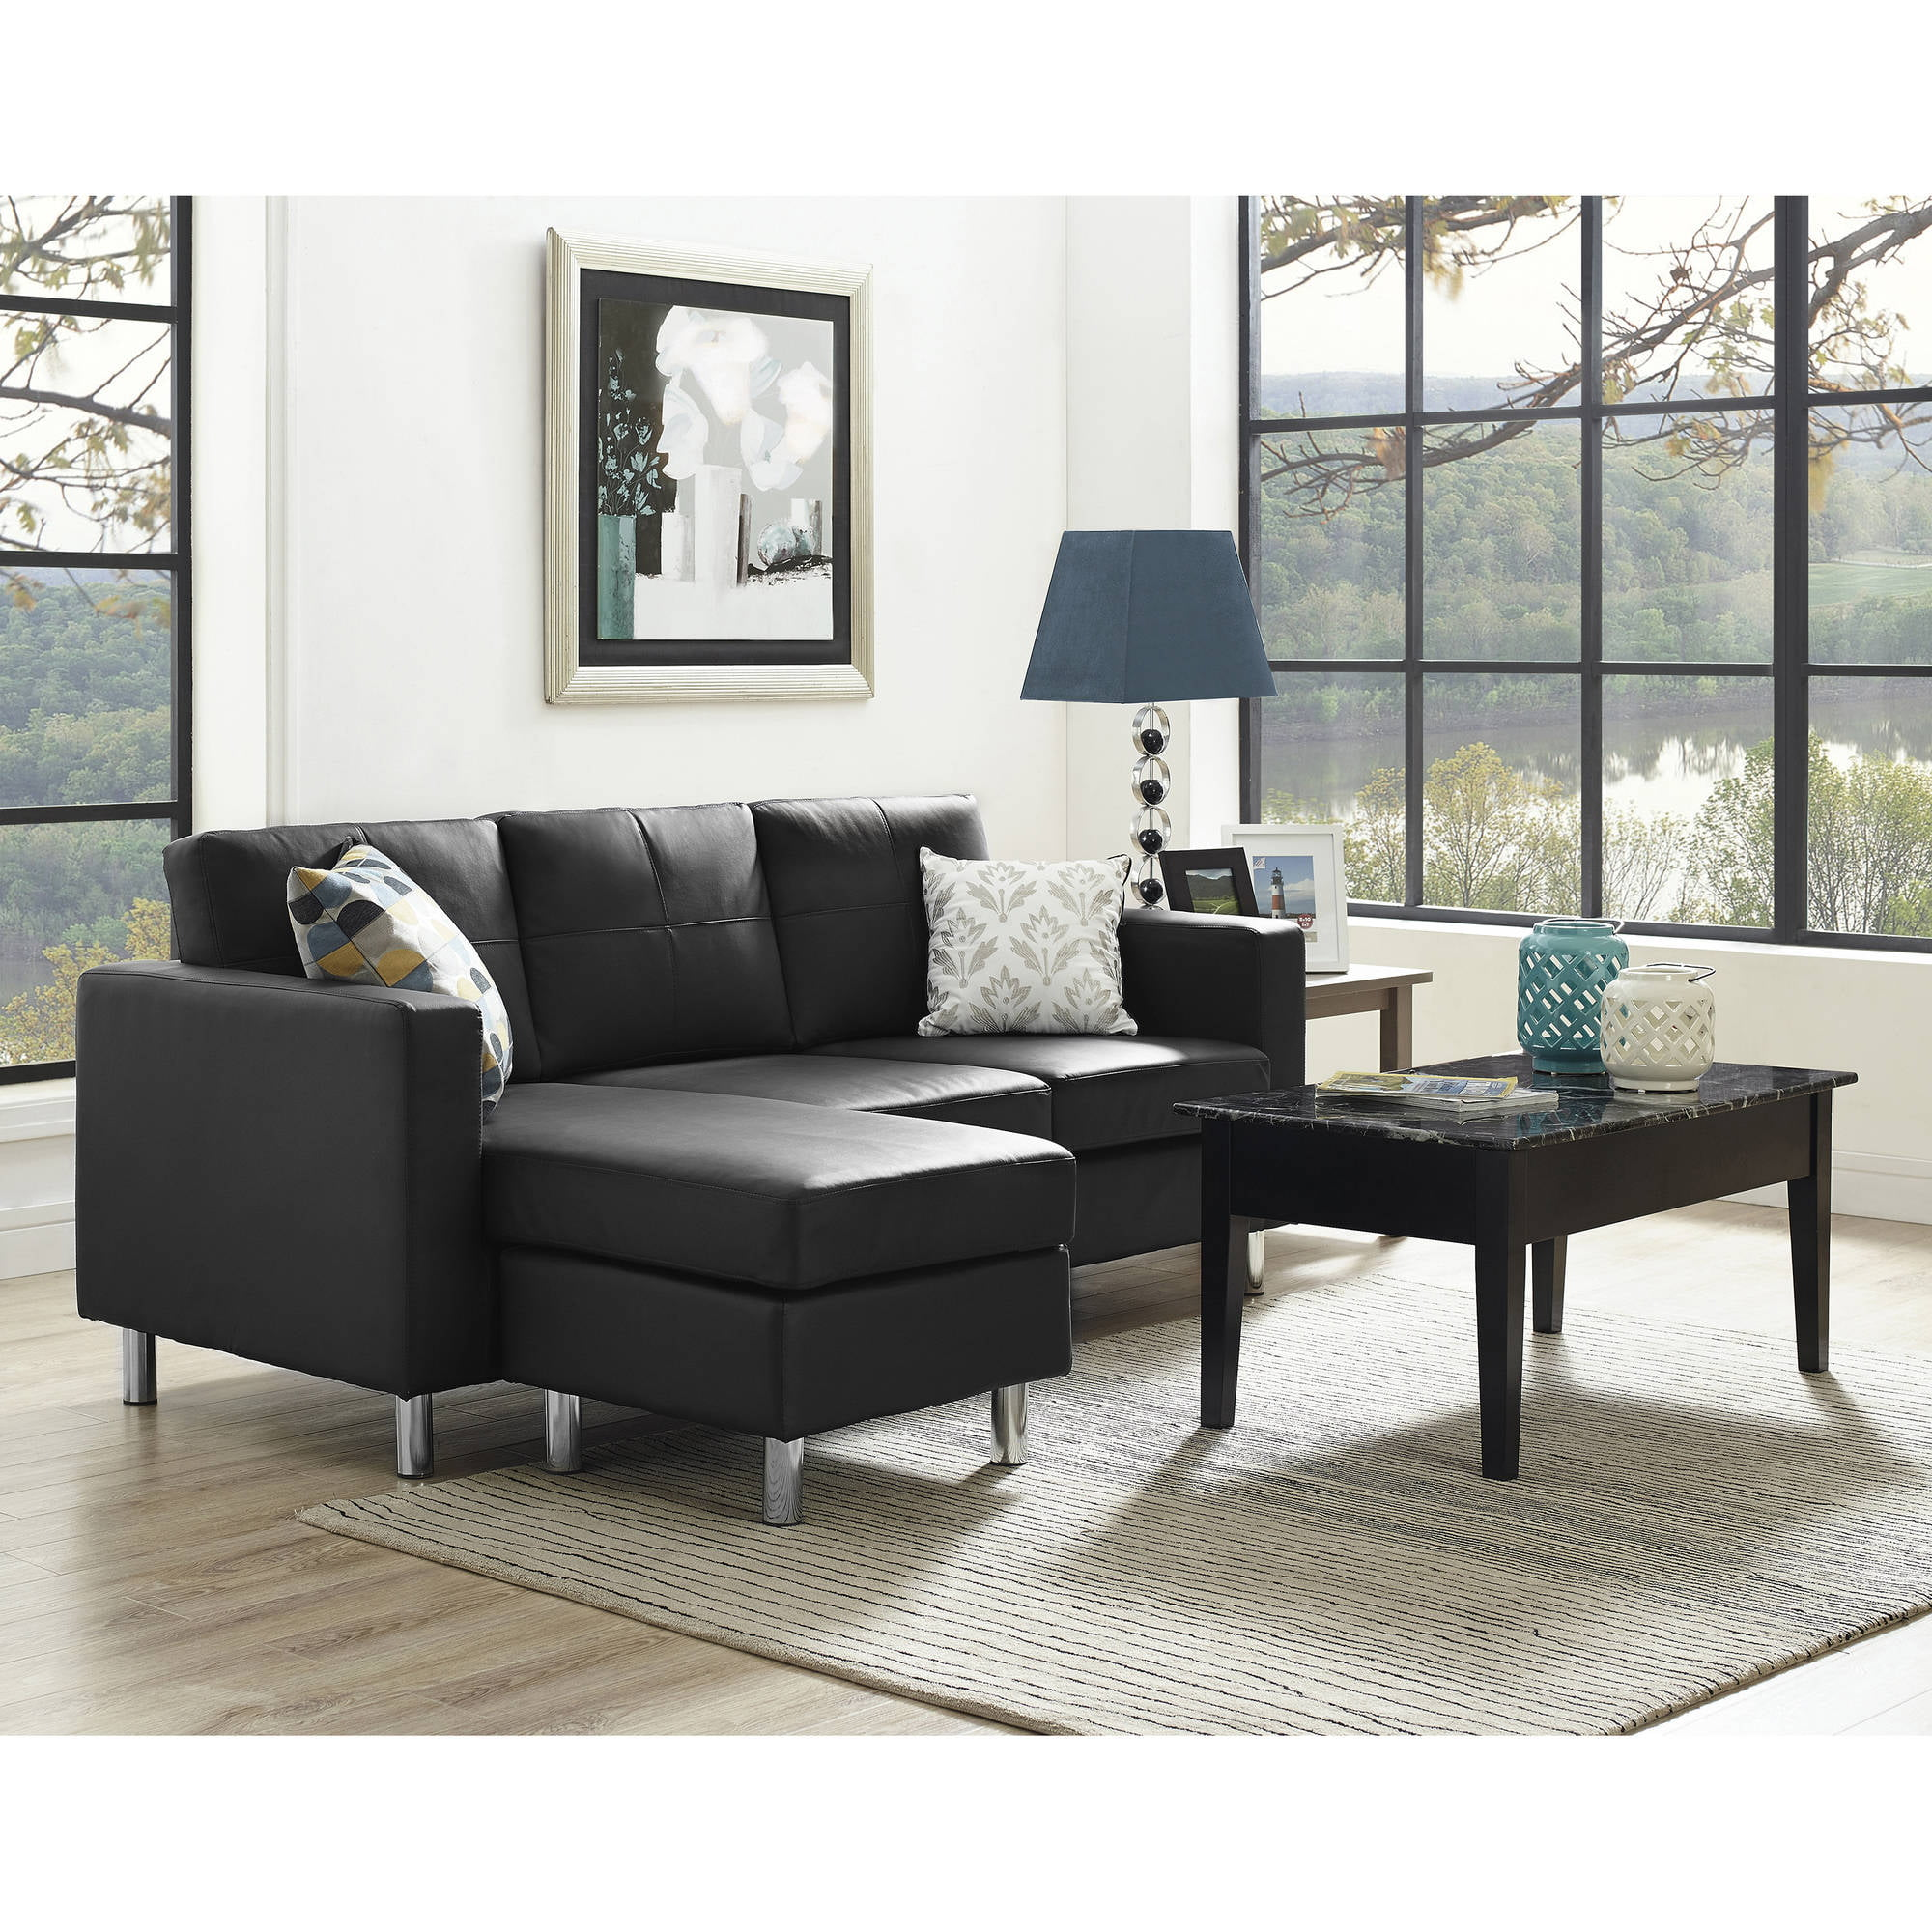 Living Room Colors For Small Spaces dorel living small spaces configurable sectional sofa, multiple